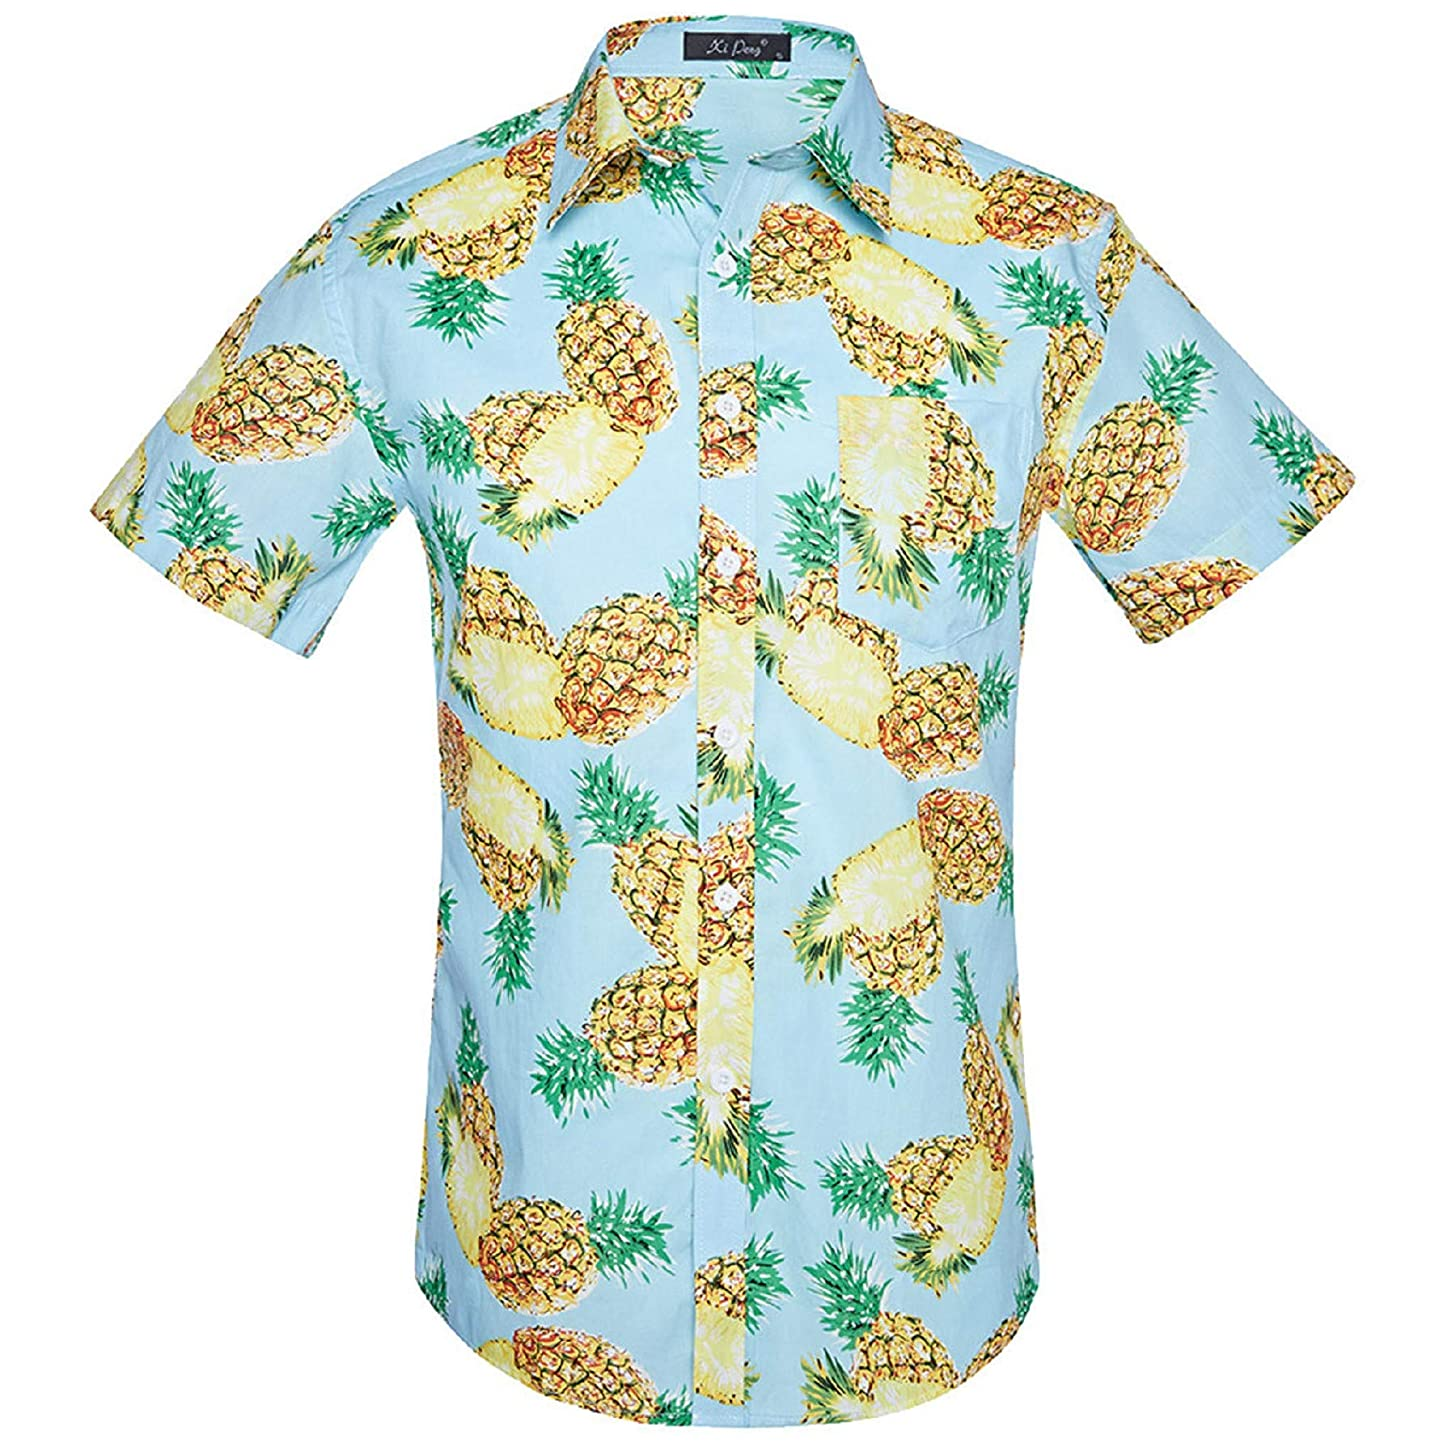 Mens Fashion Shirts, Beach Ethnic Style Short-Sleeved Retro Floral Printed Blouse Casual Short Sleeve Slim Shirts Tops